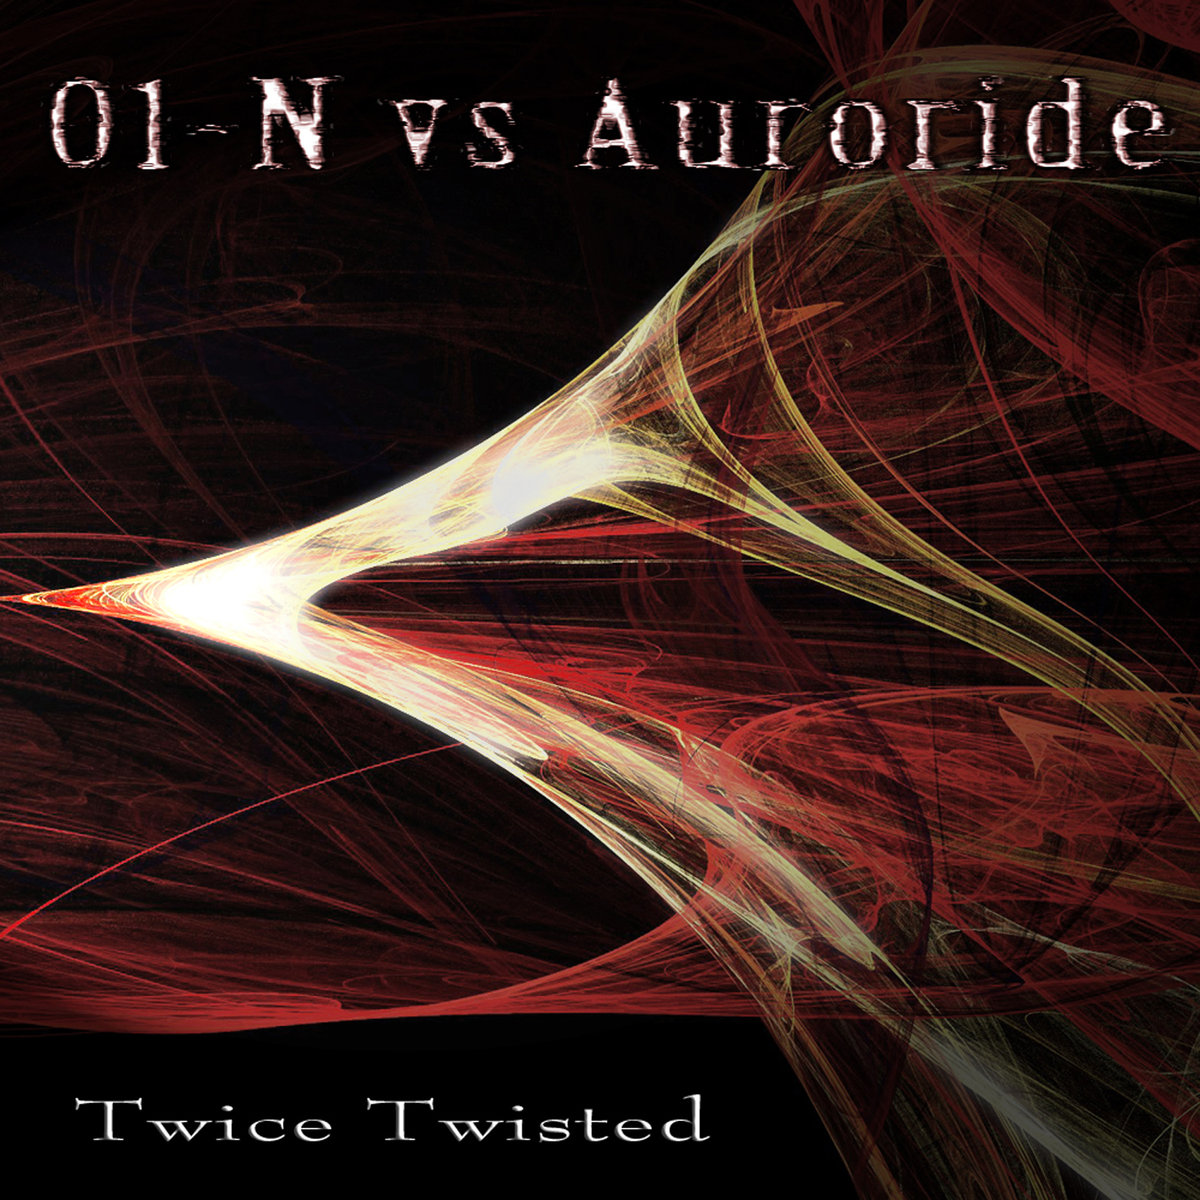 01-N & Auroride - Tierra Octli @ 'Twice Twisted' album (electronic, goa)